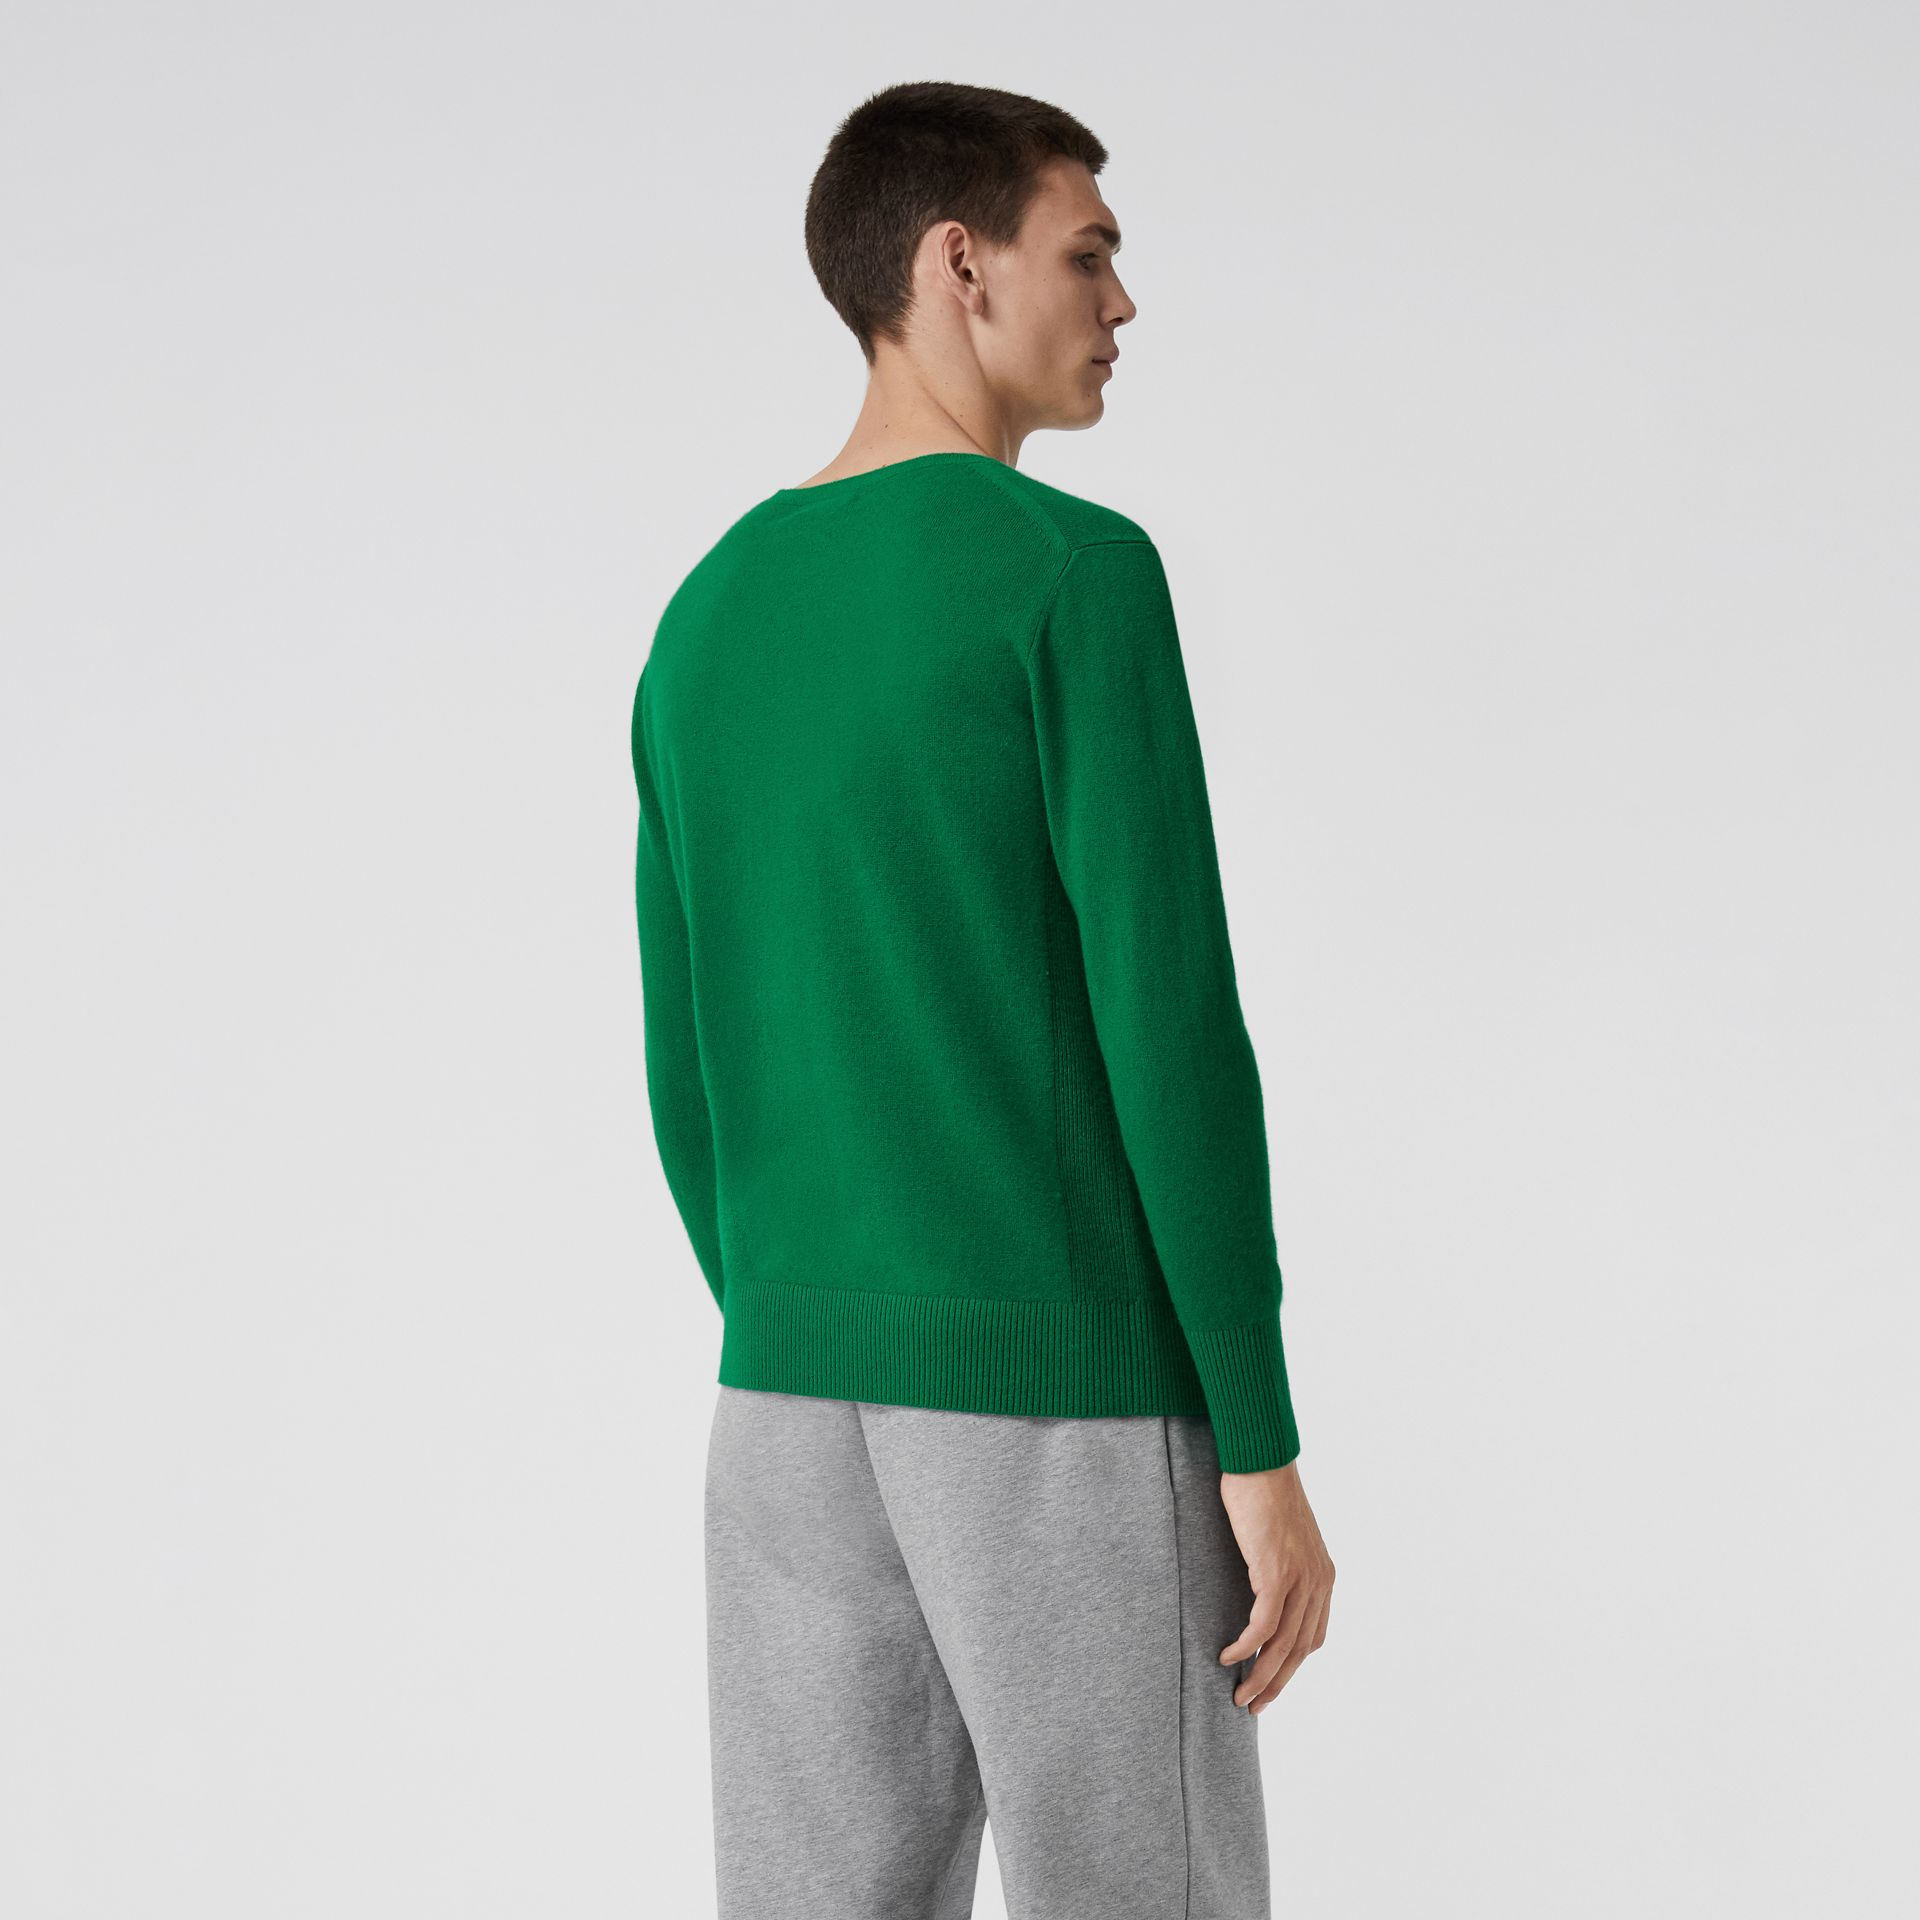 Embroidered Archive Logo Cashmere Sweater in Bright Green - Men | Burberry - gallery image 2